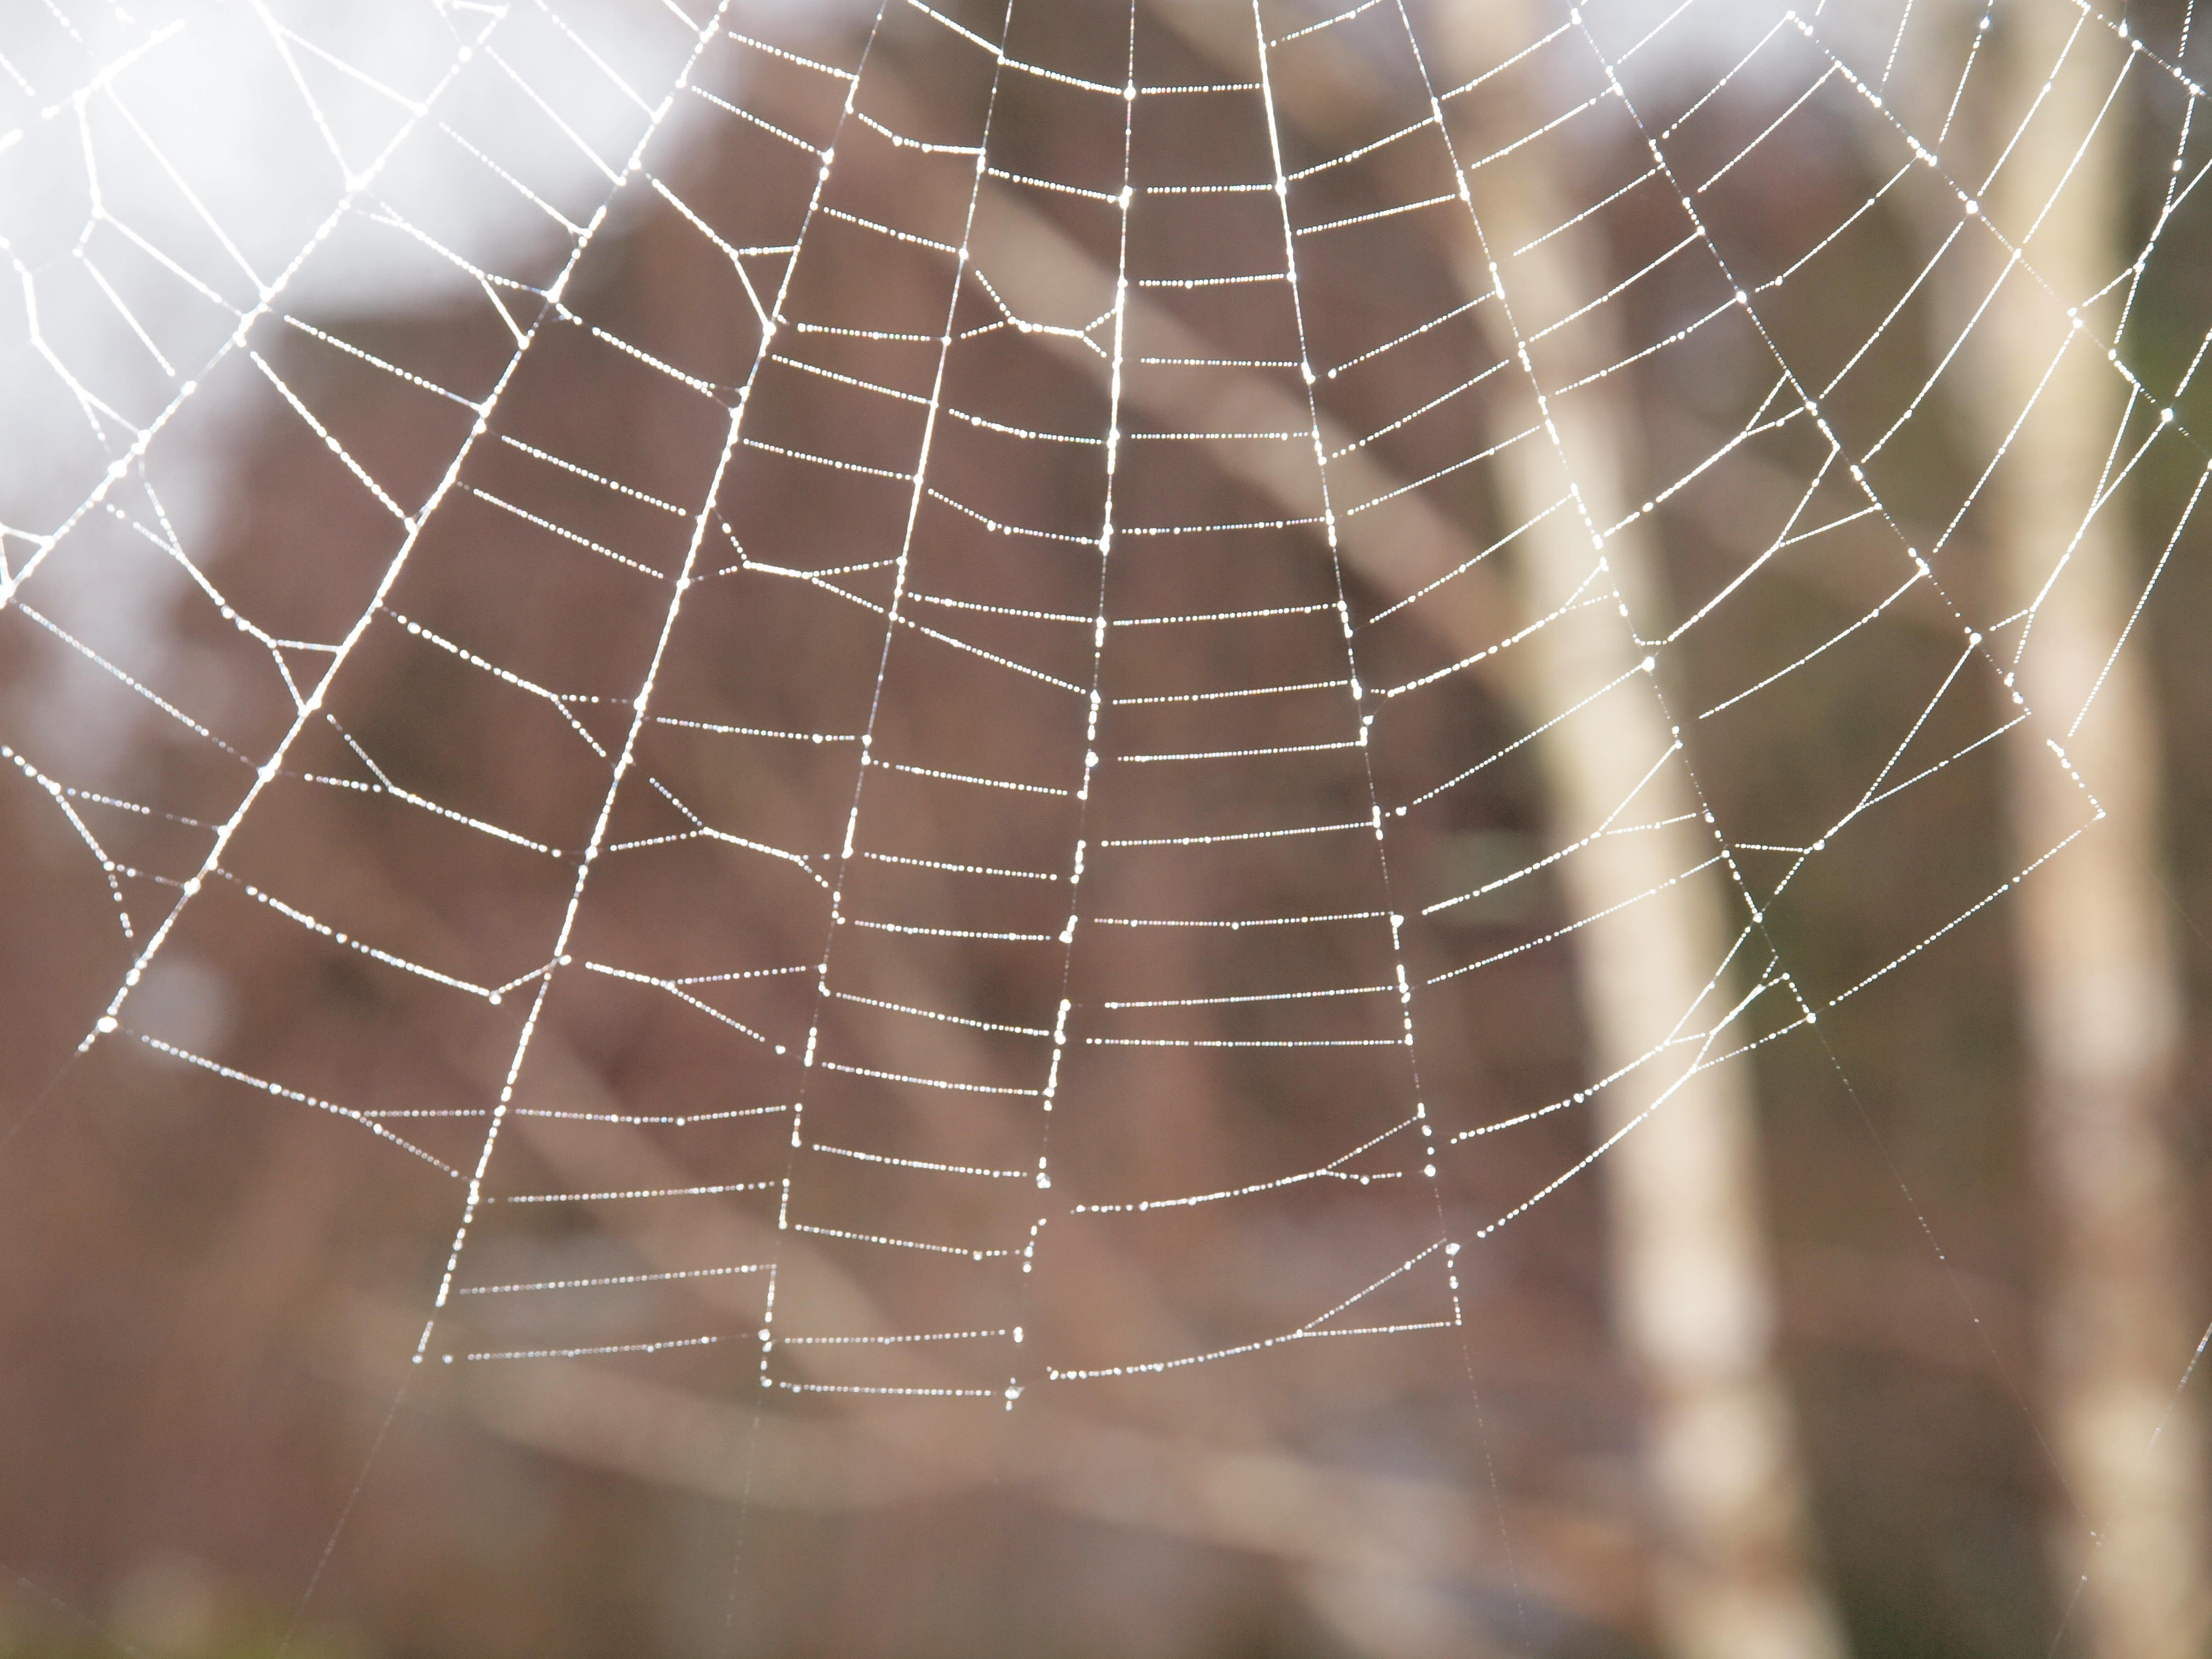 This should be Spiders-web-.jpeg.  Is it missing?